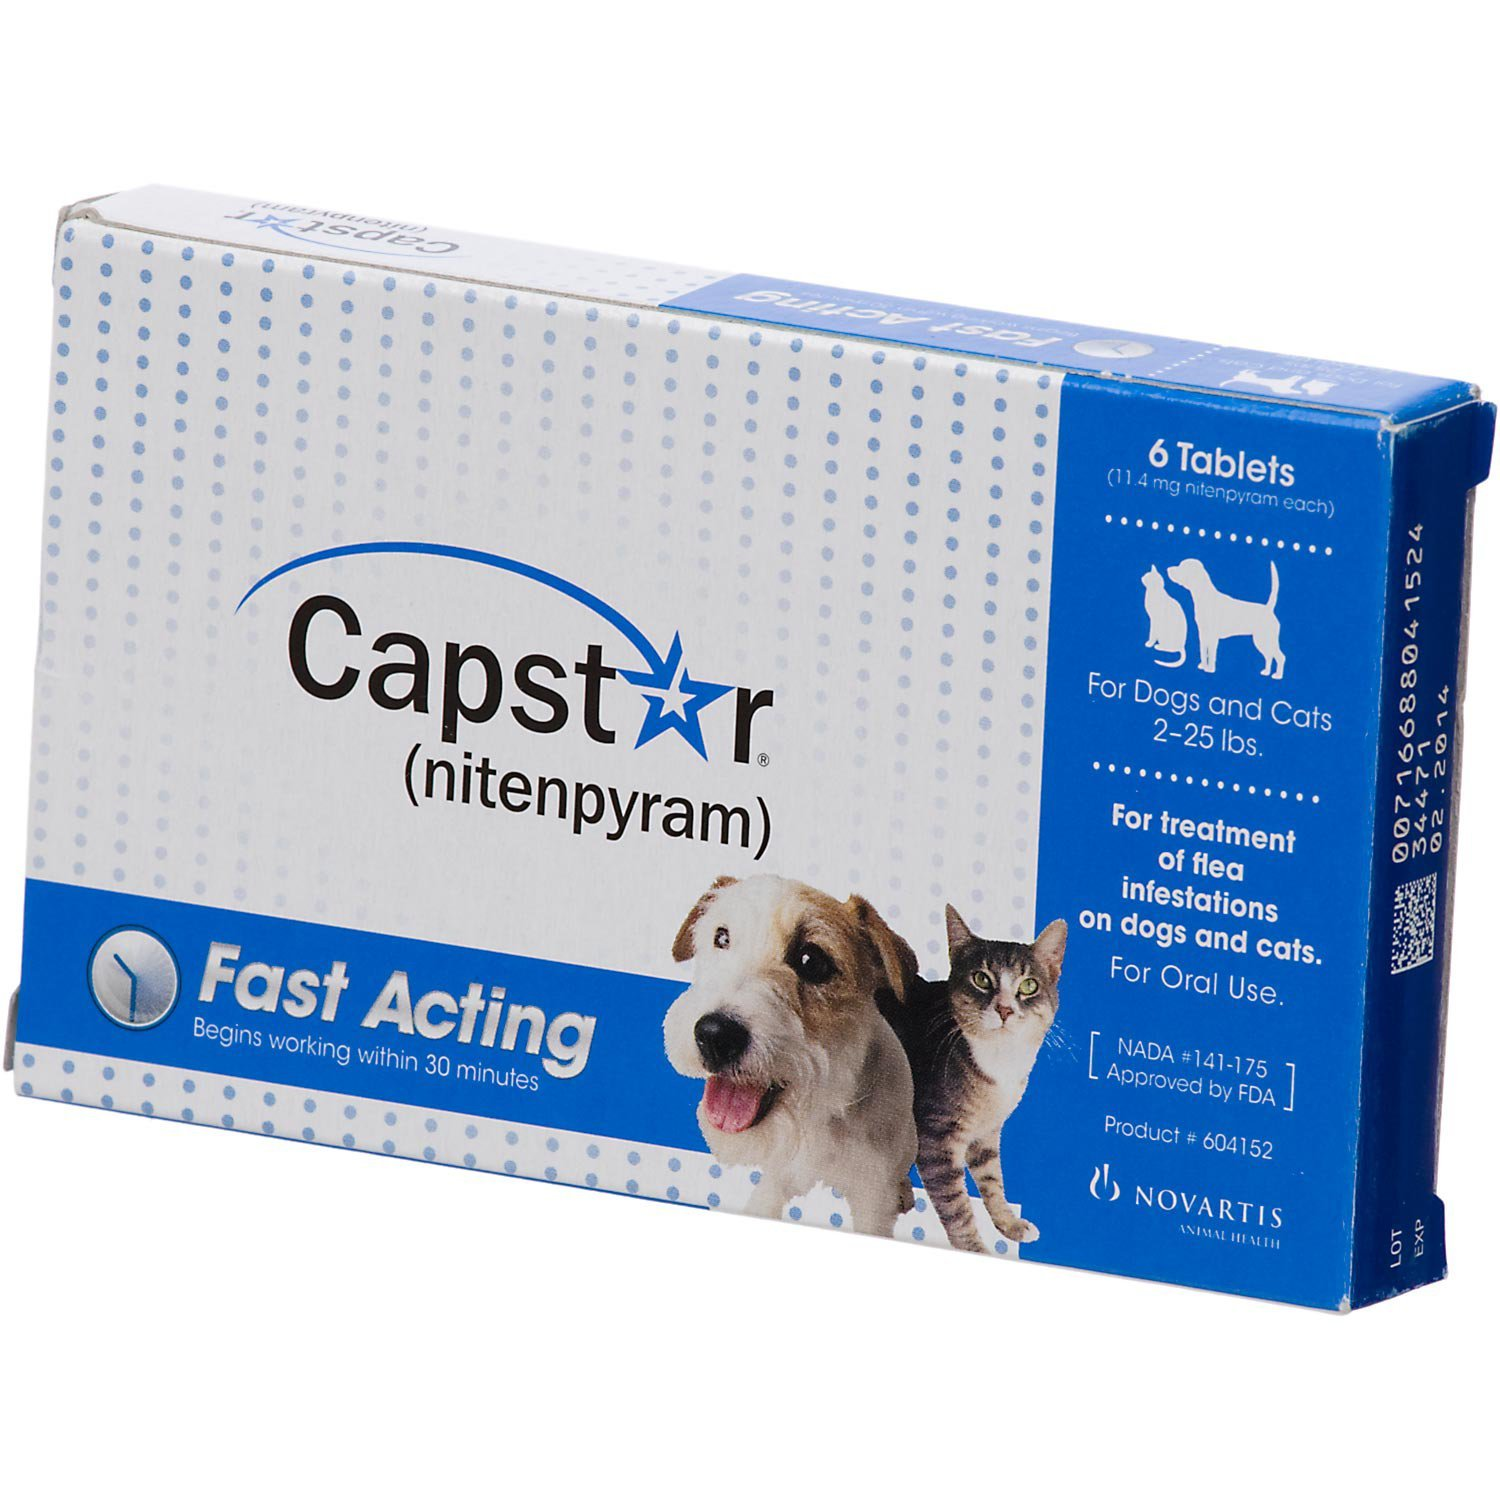 Capstar Flea Tablets for Dogs and Cats, 2-25 lbs. by capstar